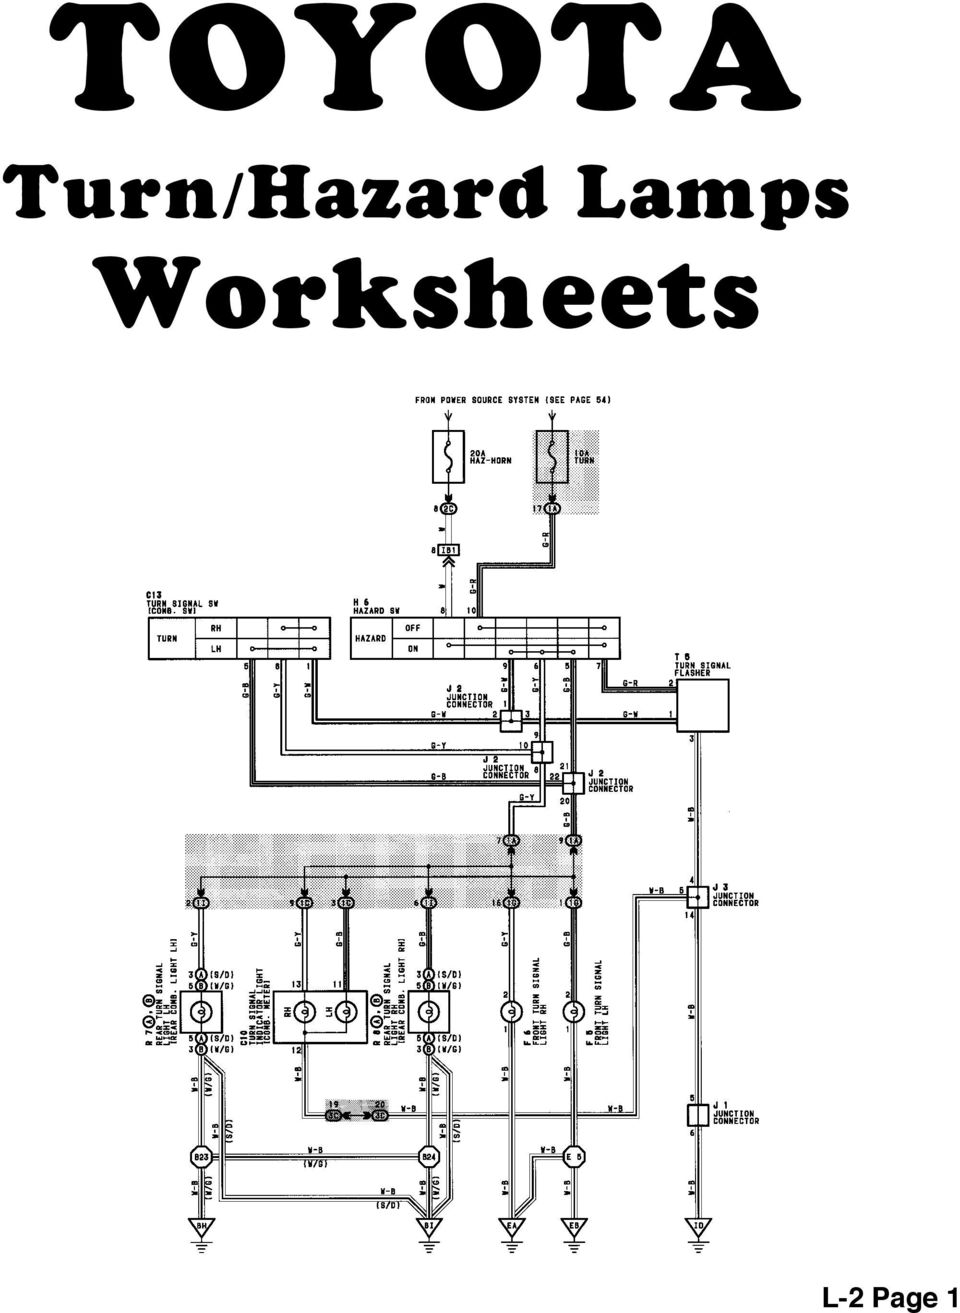 Body Electrical Toyota Wiring Diagram Workbook Here Is A Wire For The Turn Signals And Hazard Lights 16 Signal Lamps Reference L 2 Page